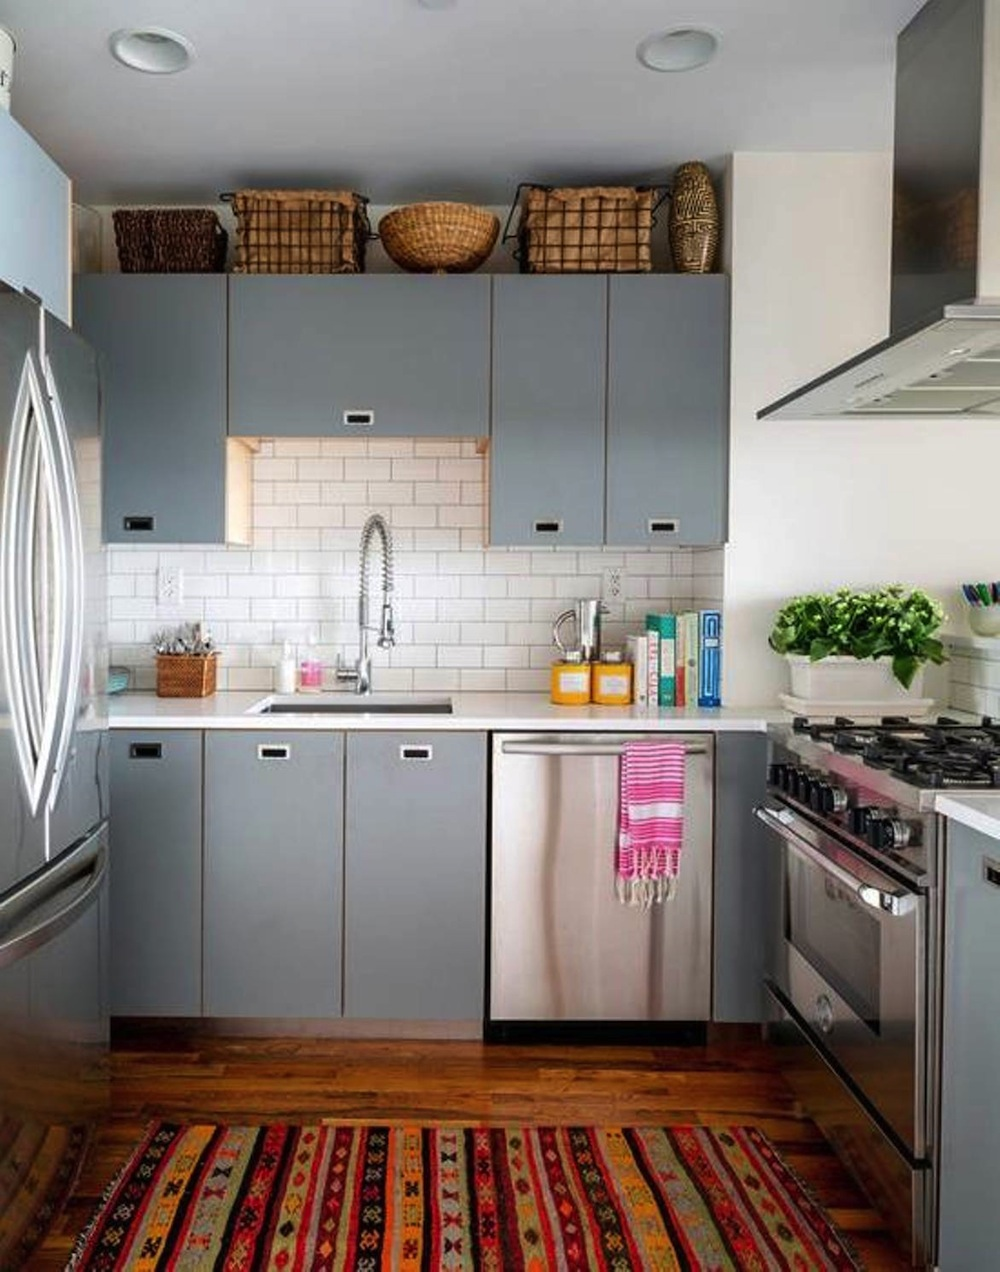 20 Great Ideas for Creating More Space in a Small Kitchen